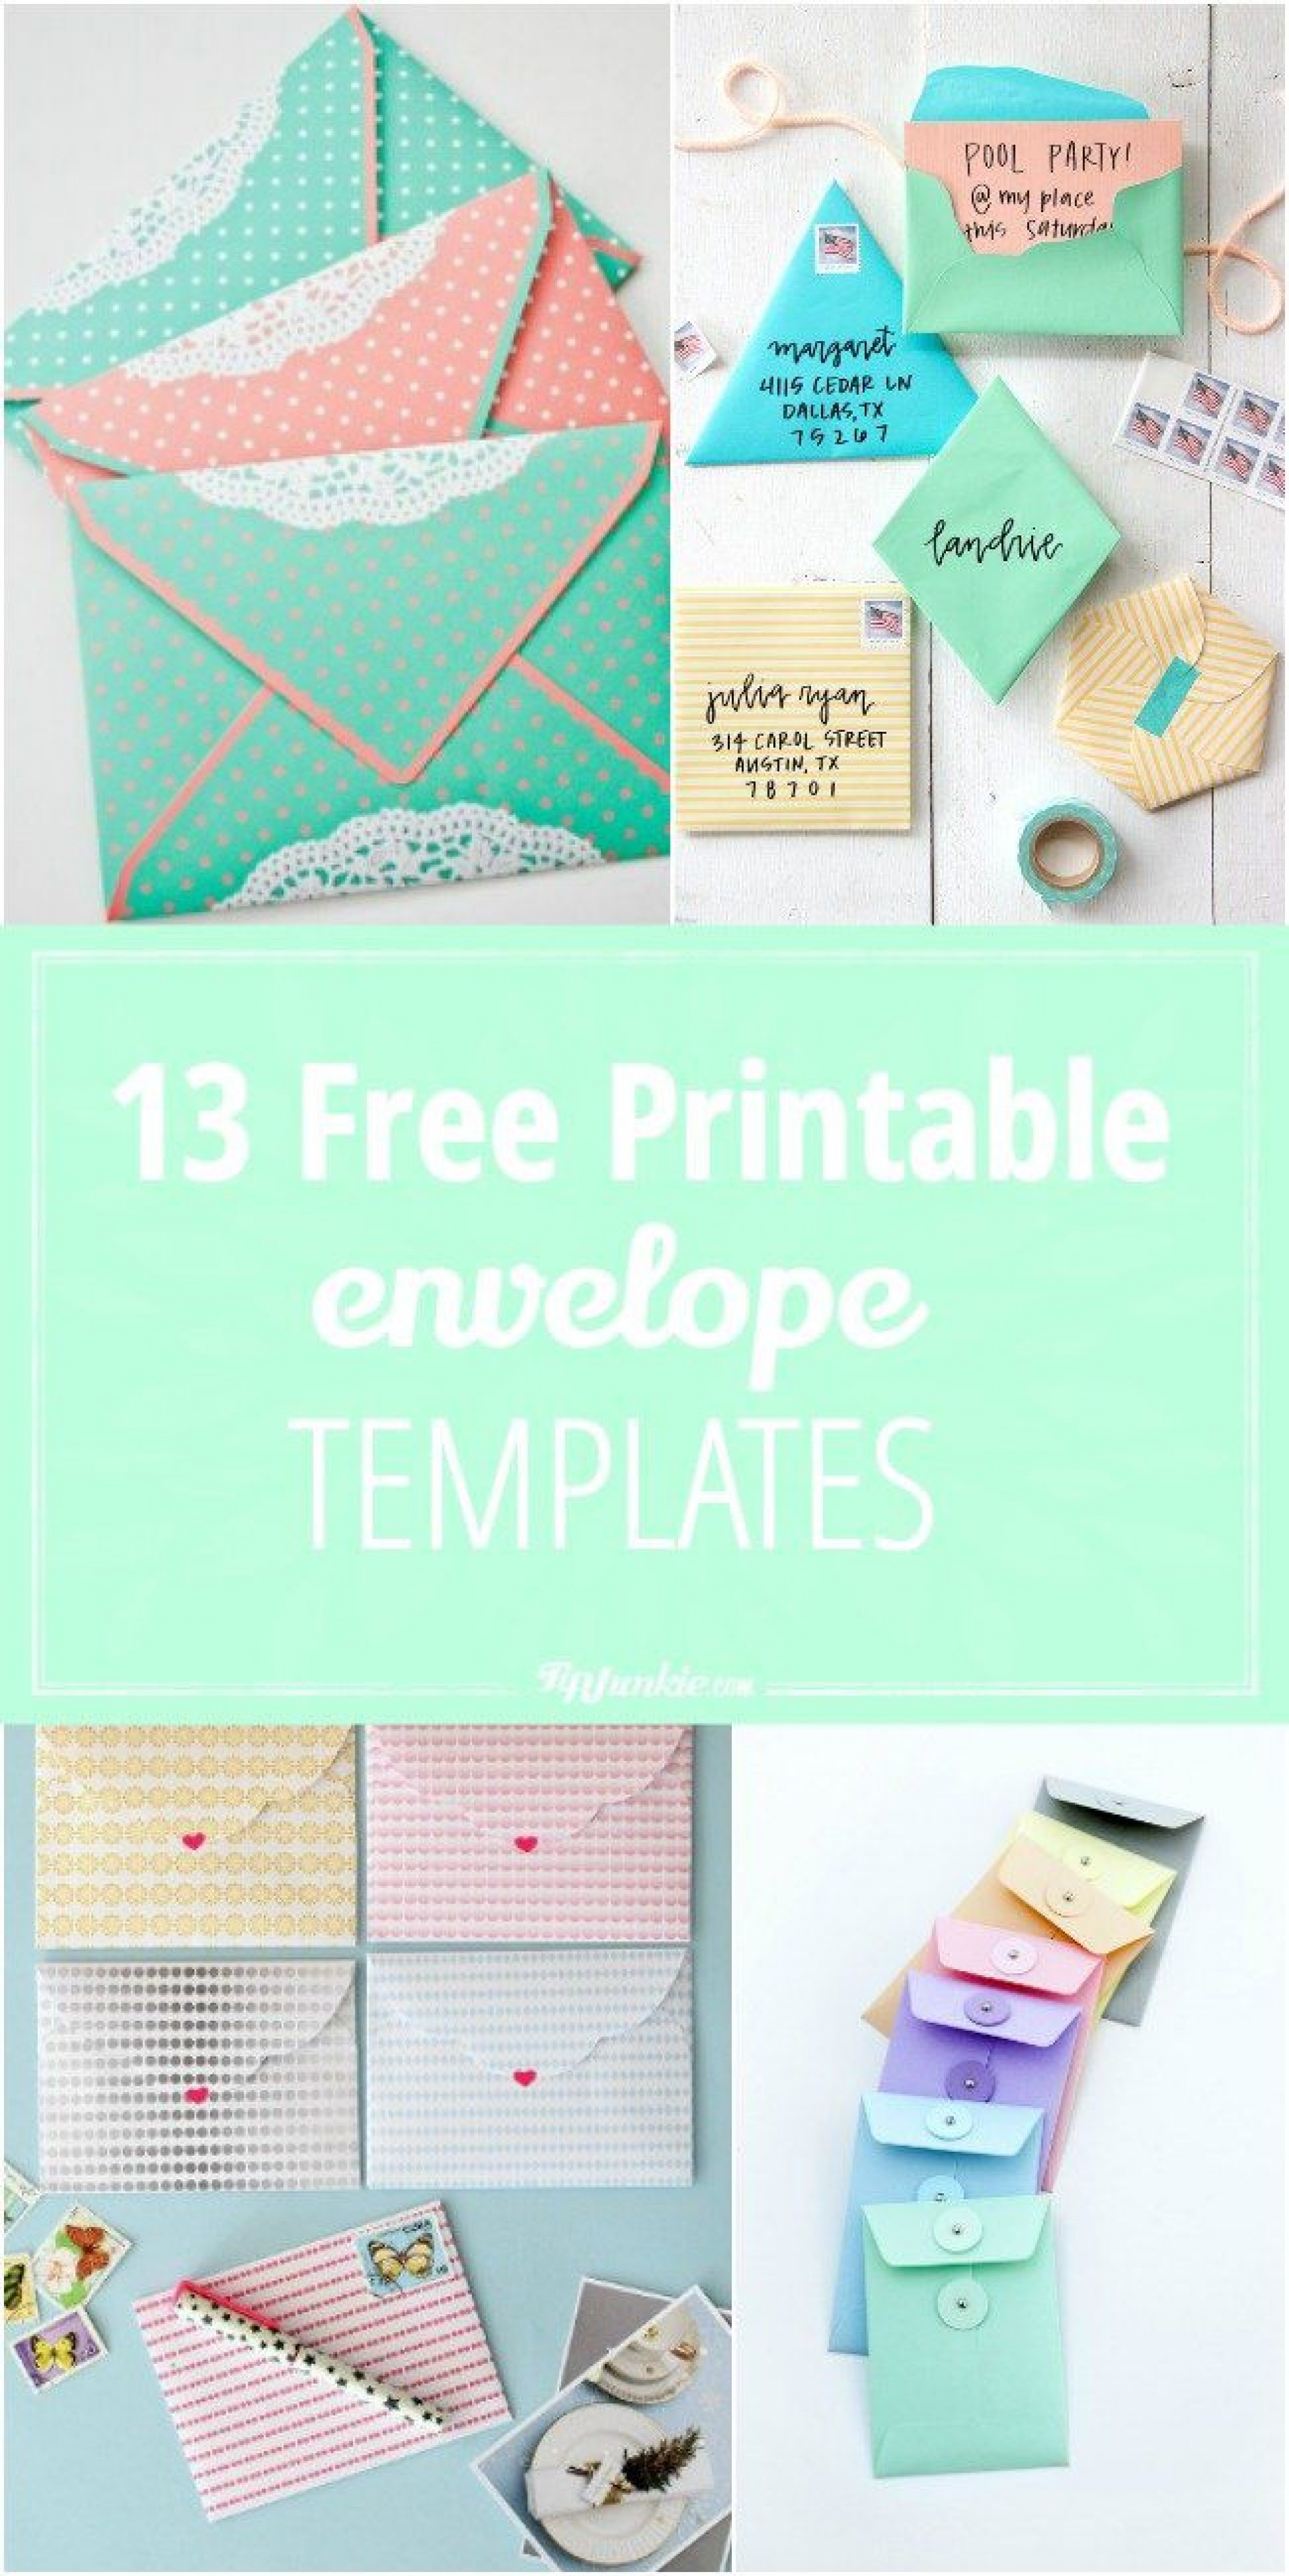 001 Sensational Free Printable Envelope Template Highest Clarity  Templates Addres Mini Pattern1920